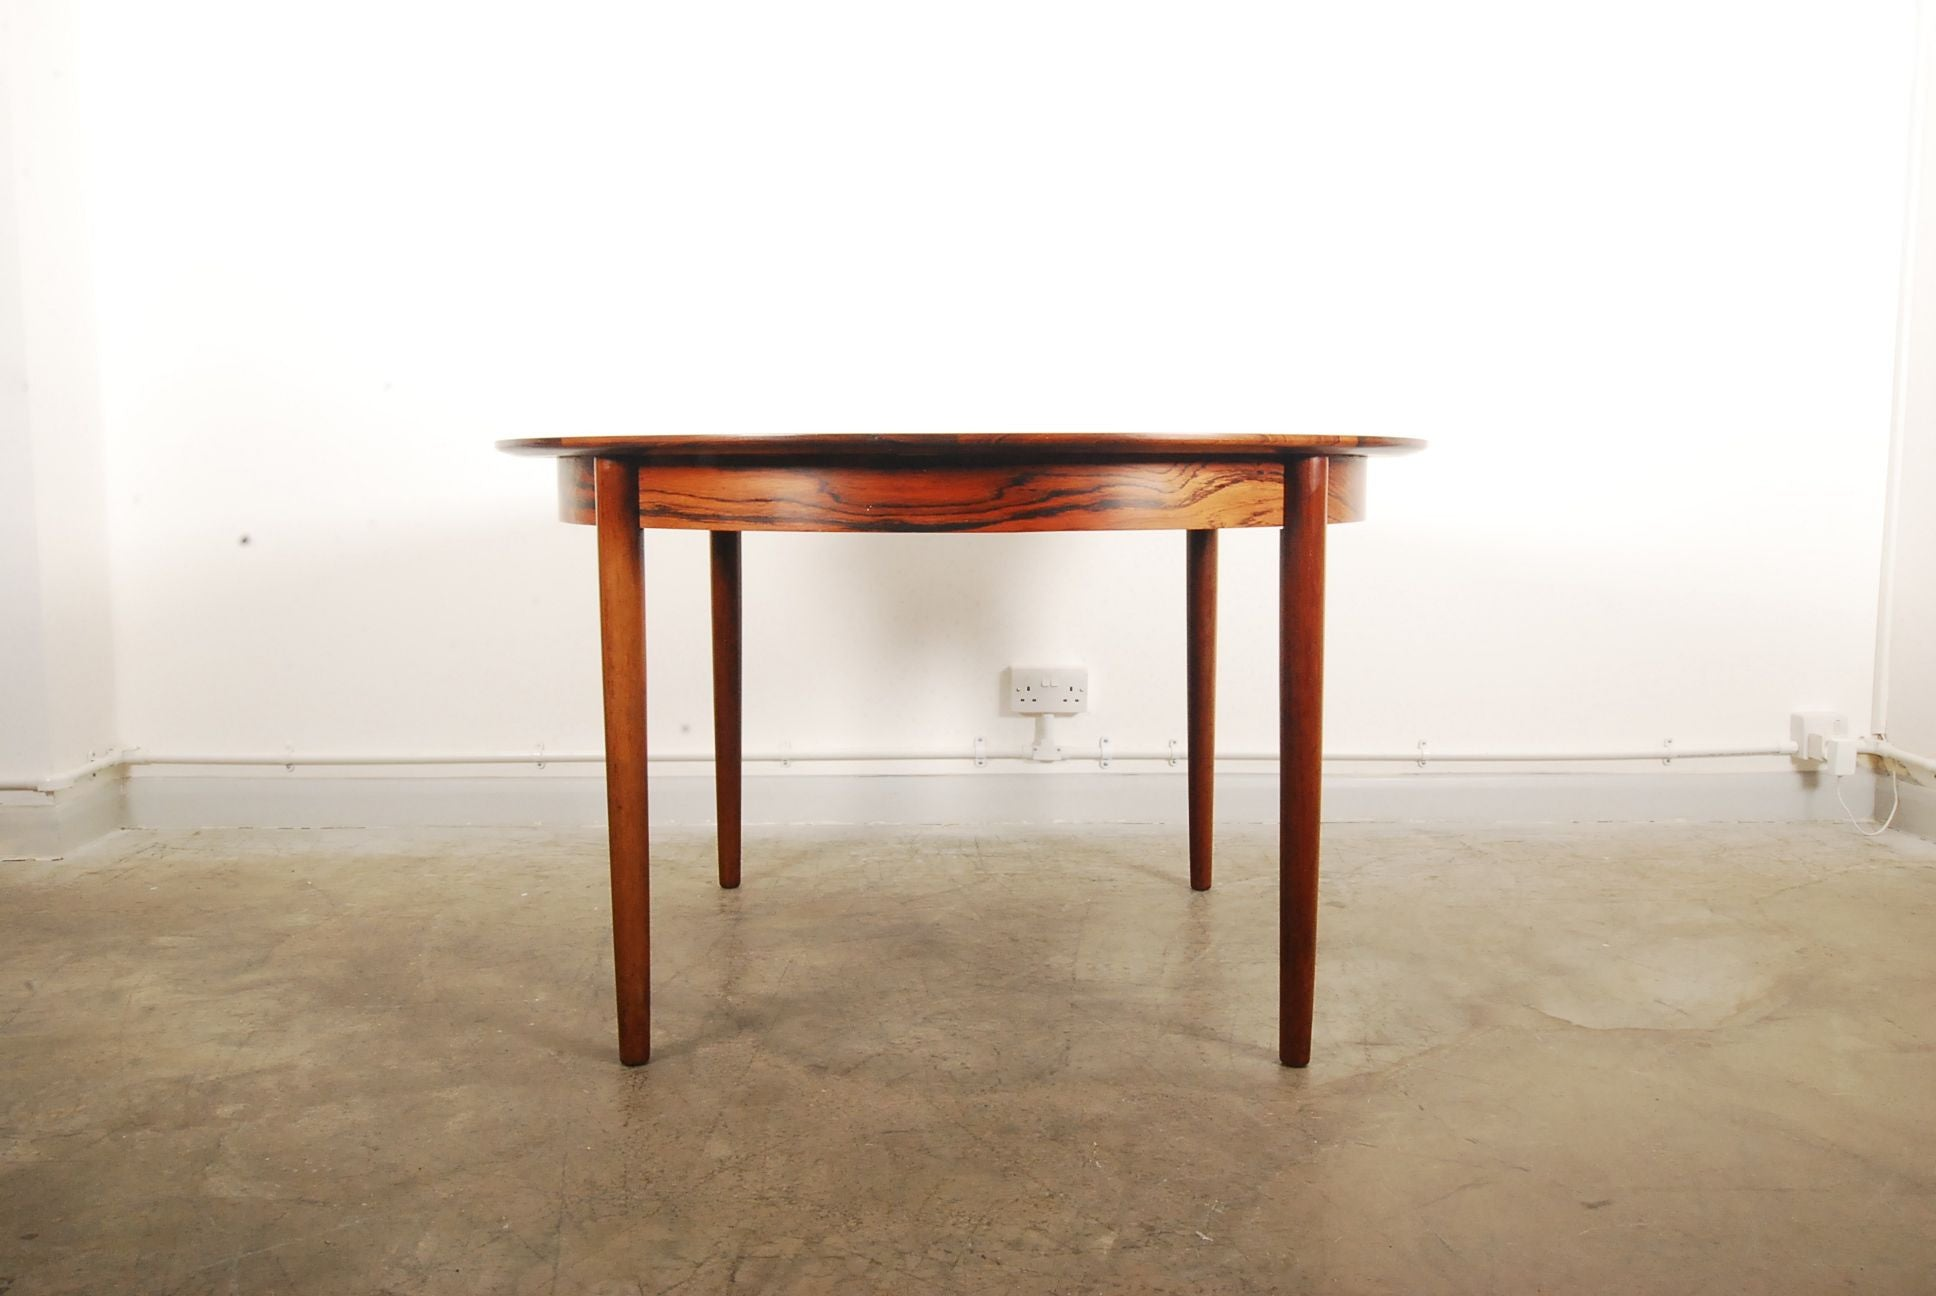 Rosewood dining table with drop-in leaves